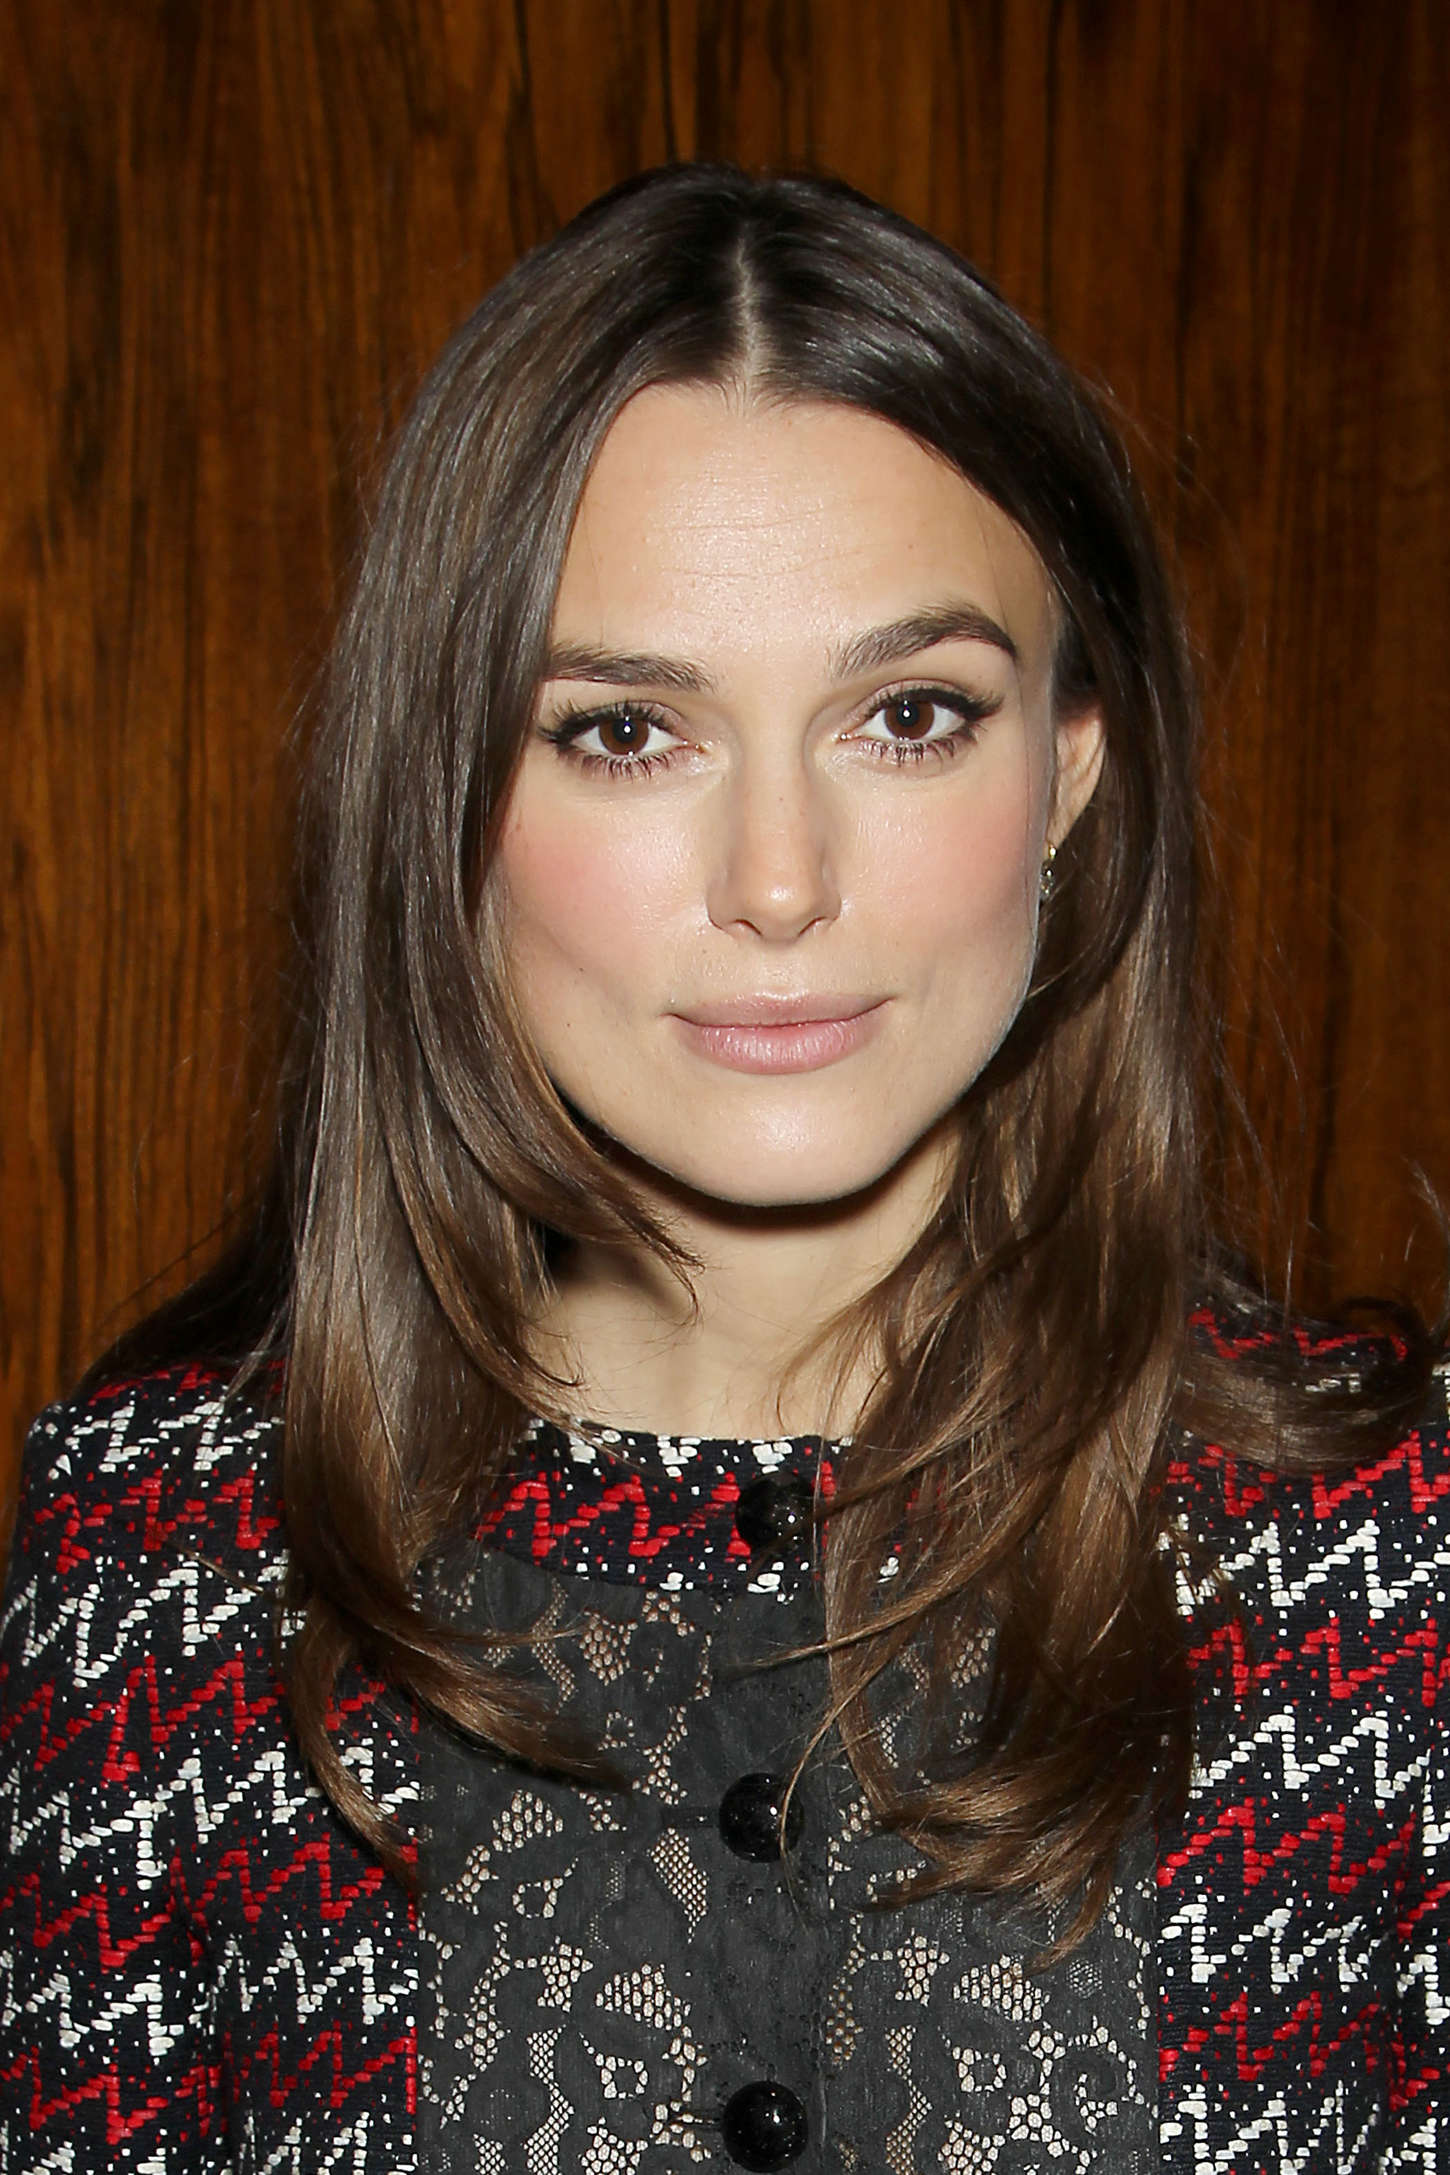 Keira Knightley - 'The Imitation Game' Special Luncheon in NYC